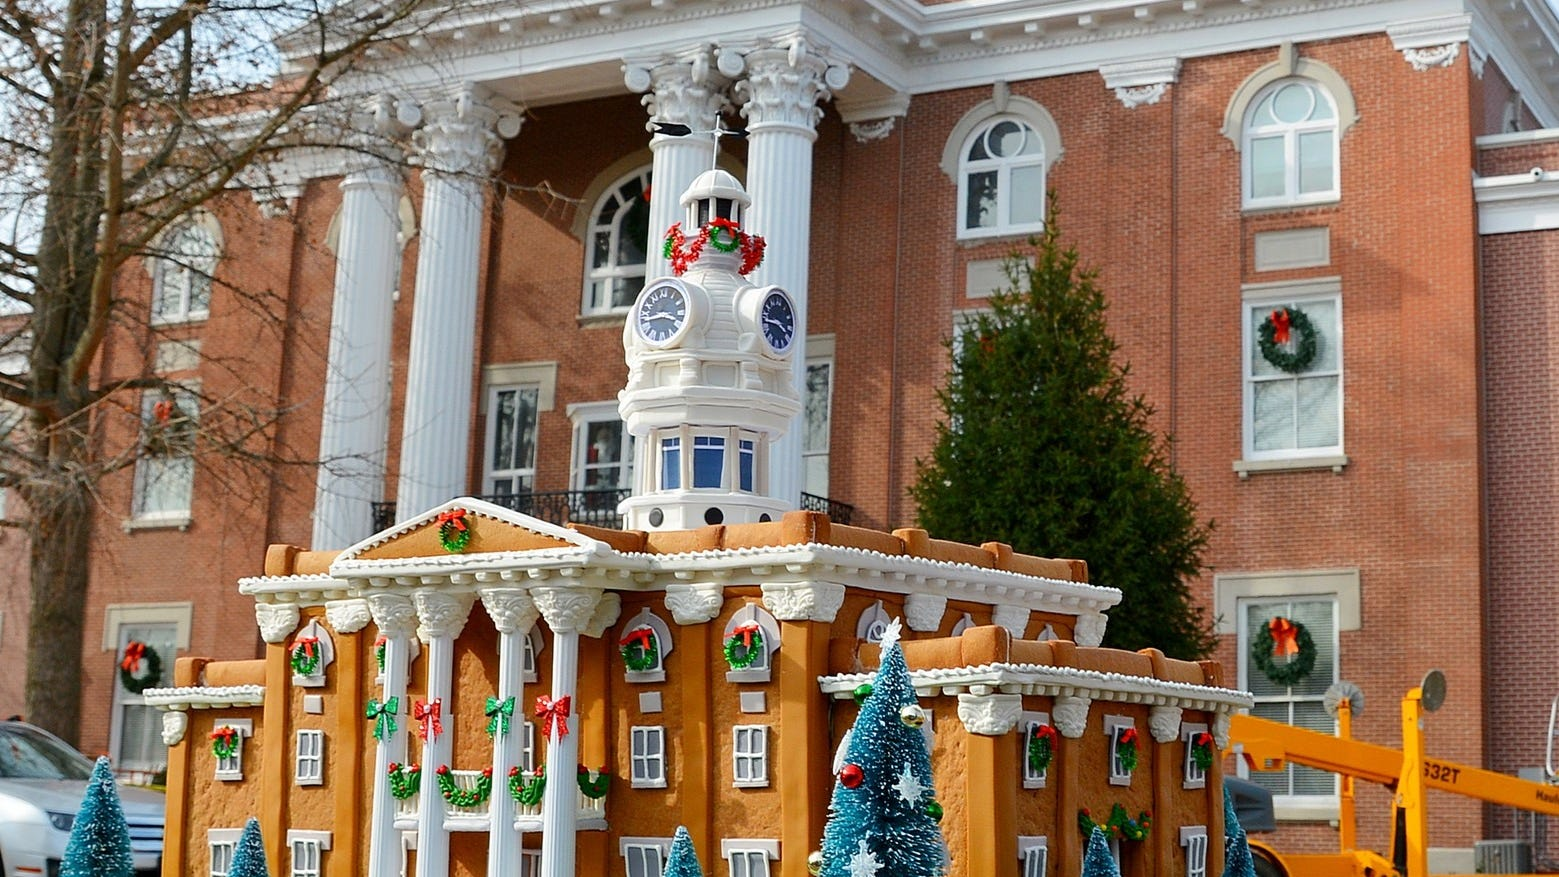 Smyrna baker builds scale replica of courthouse